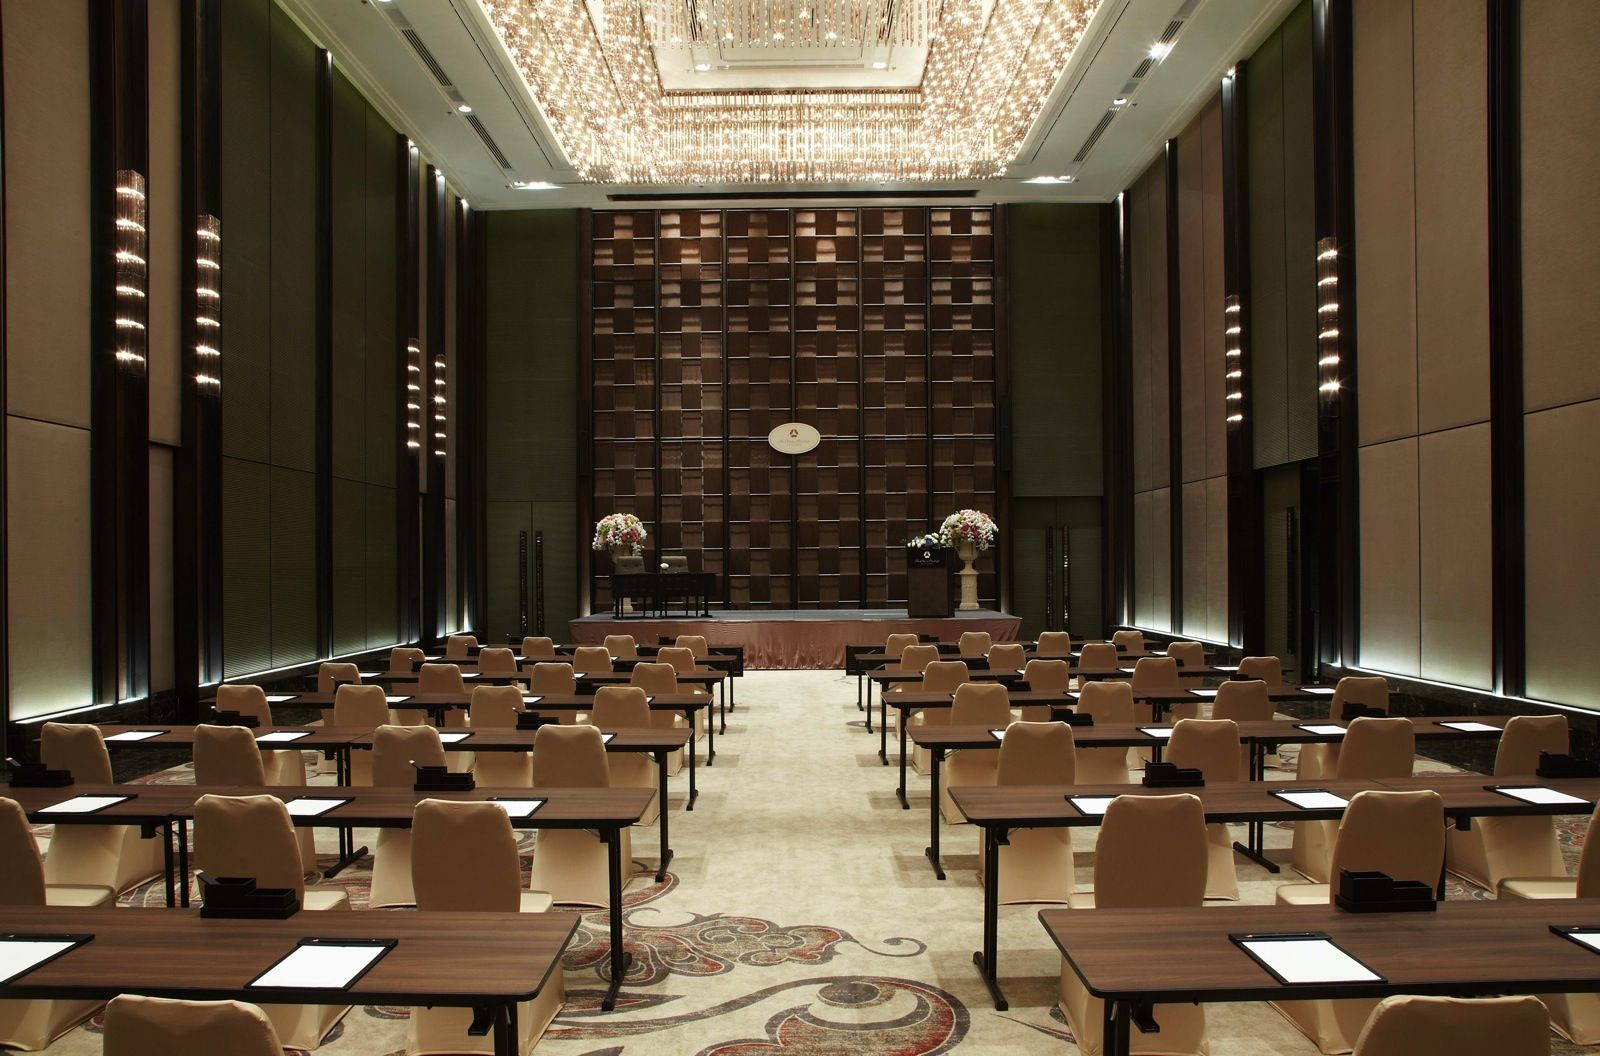 Accommodation details seoul luxury hotel accommodations rooms - Conference Room Grand Ballroom Classroom Hotel Amsterdamluxury Hotelswall